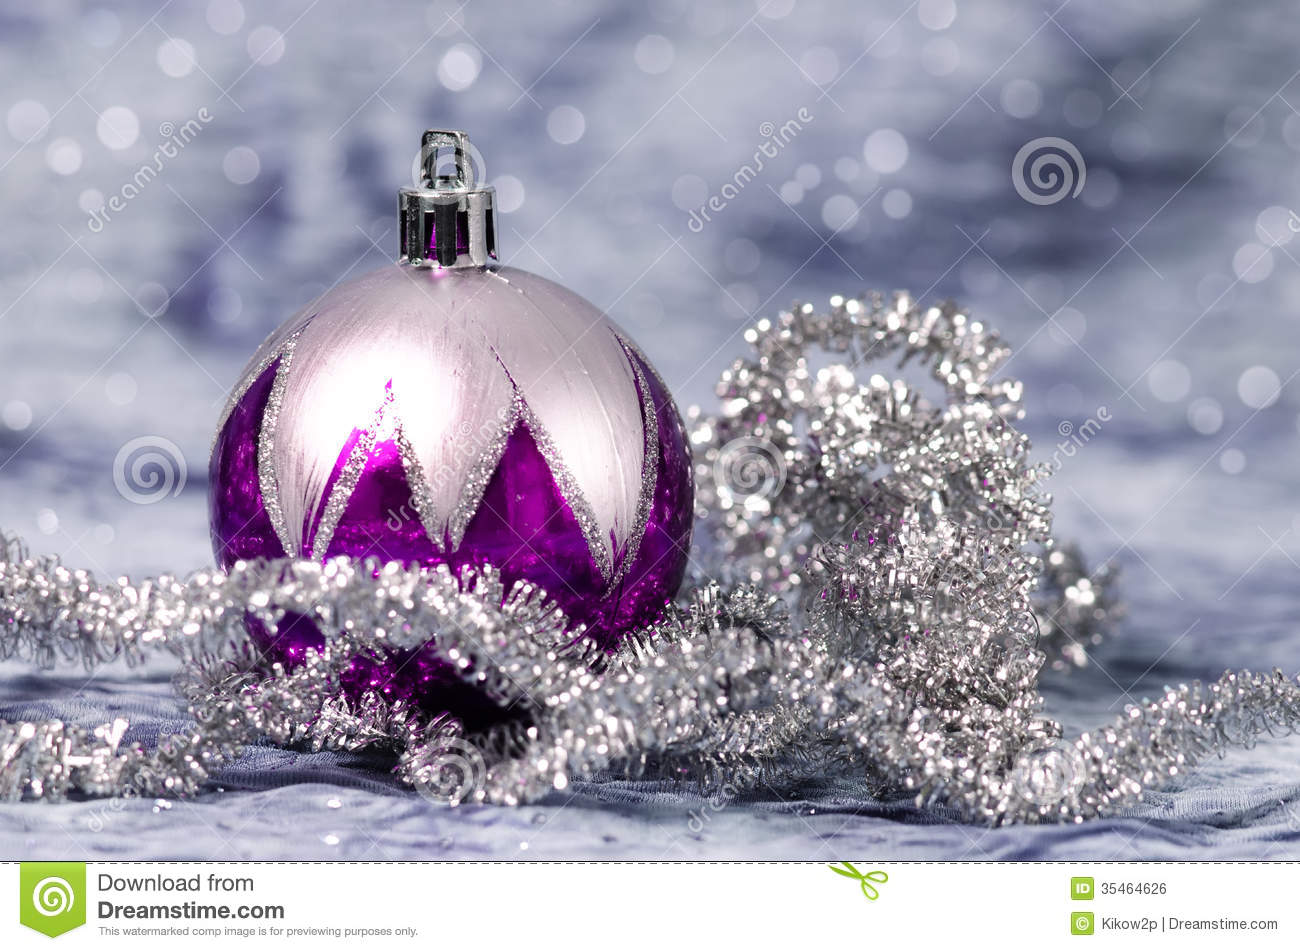 Christmas tree decorations purple and silver - Christmas Decorations Purple And Silver